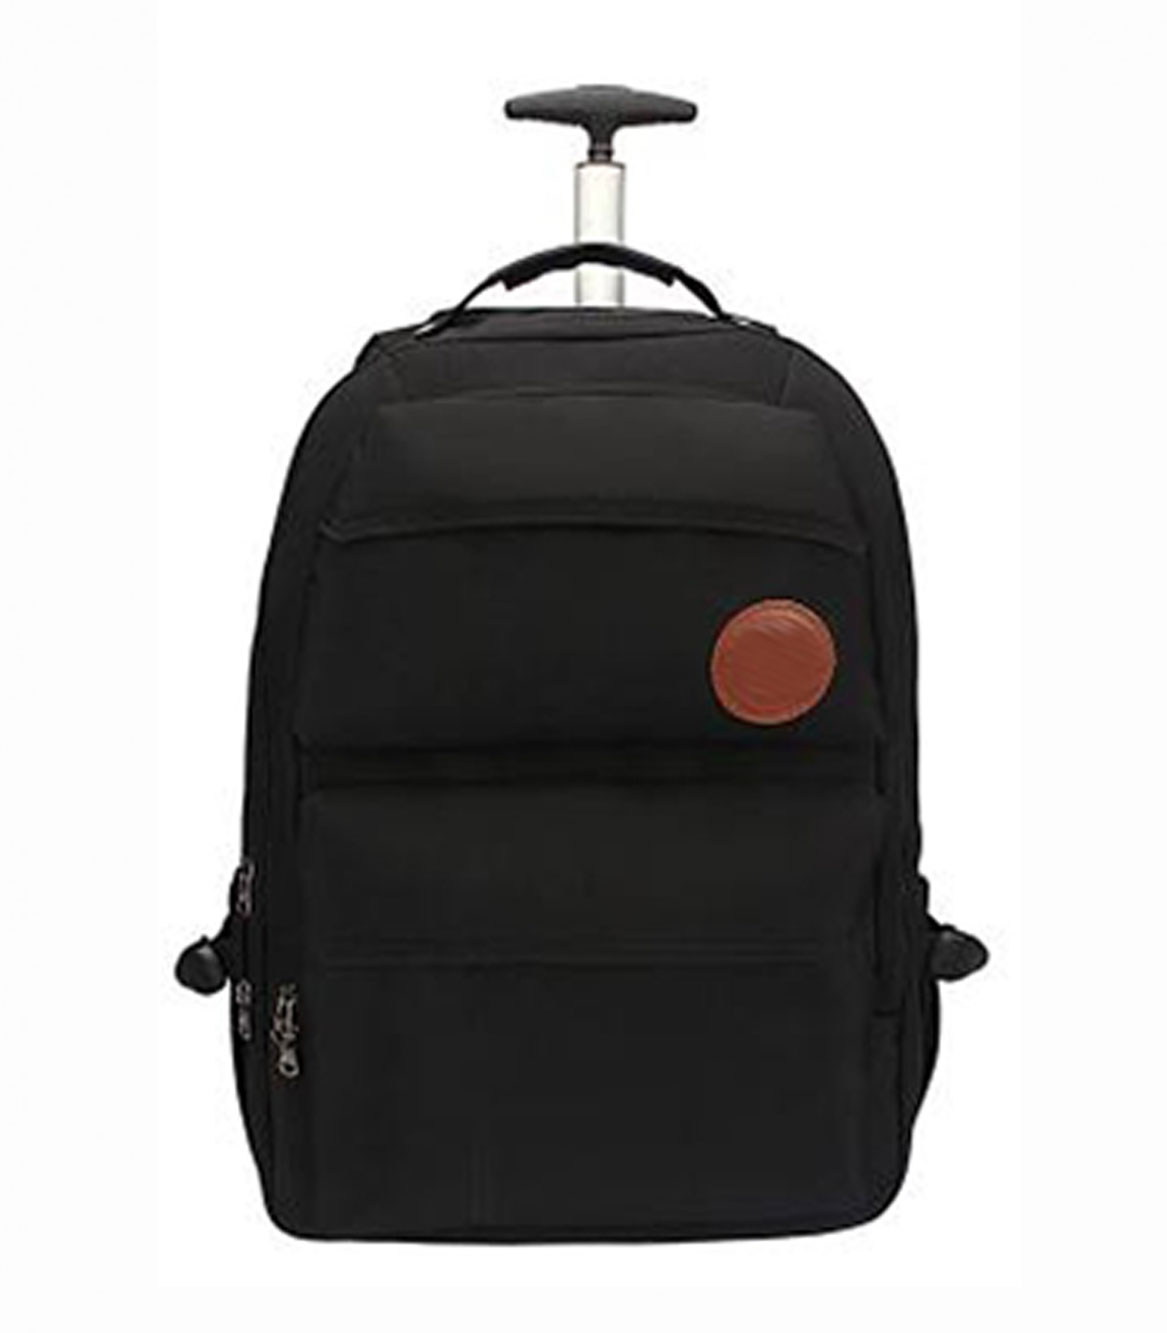 Colossus Laptop Trolley Backpack